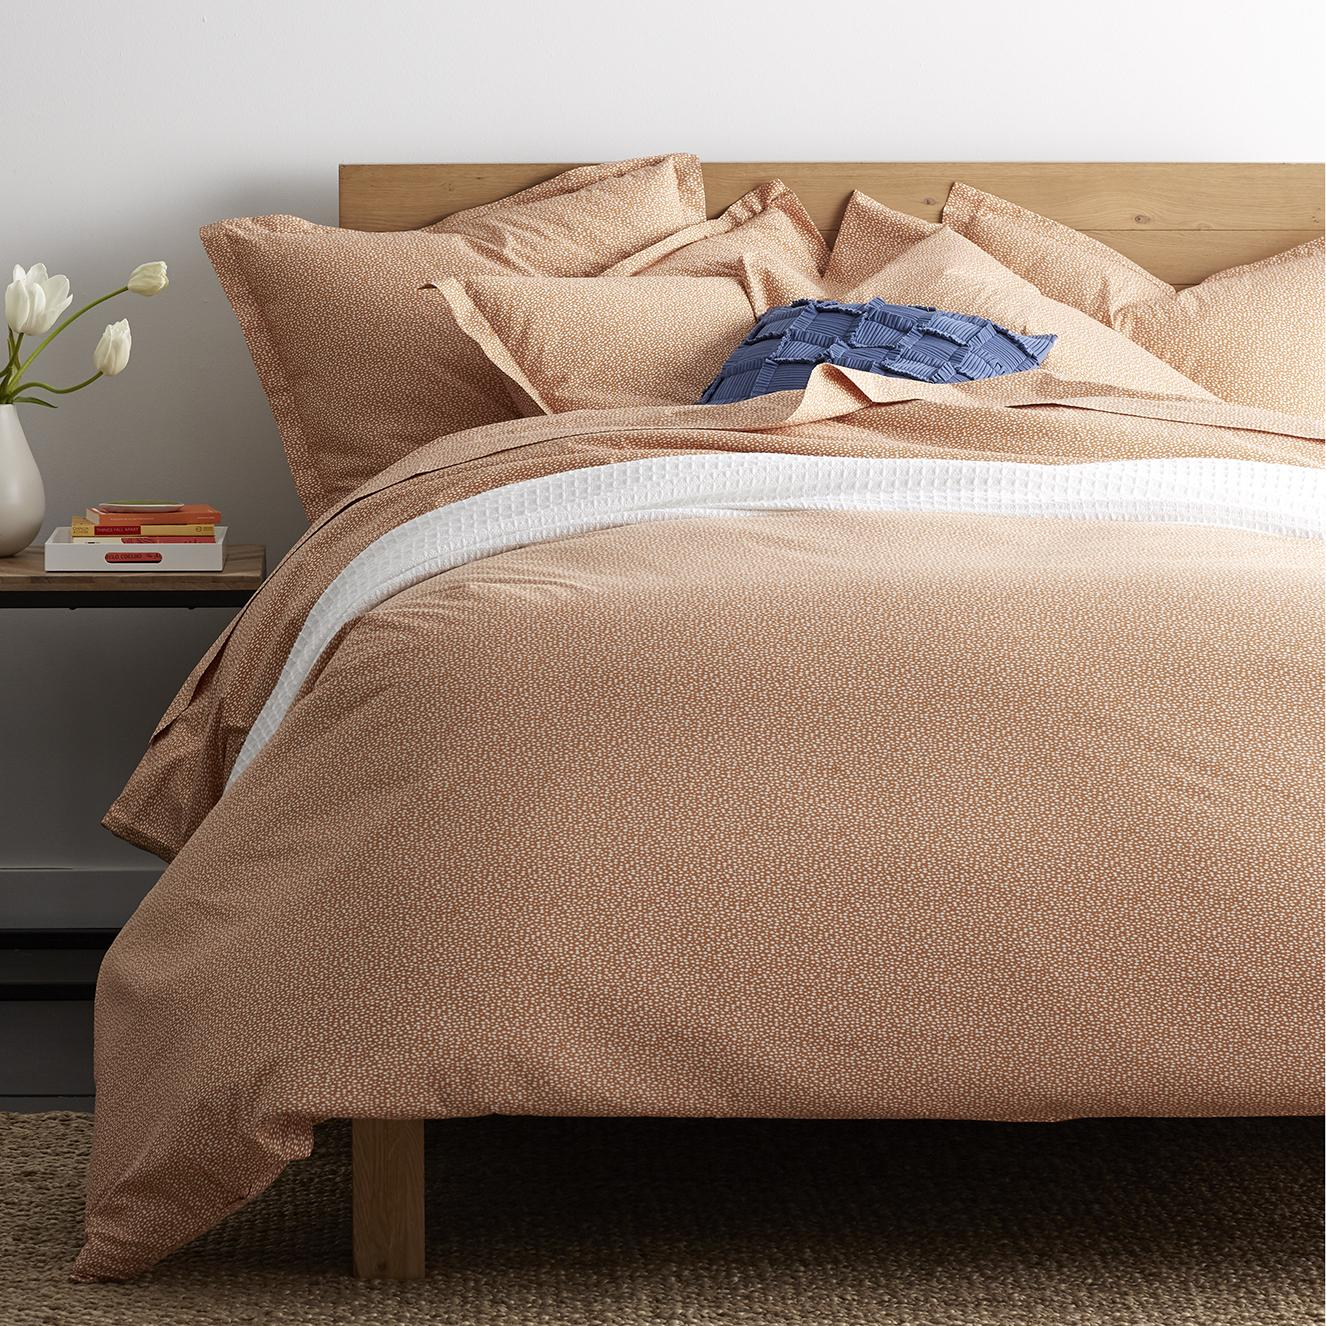 Mica Organic Percale Bedding - Clay